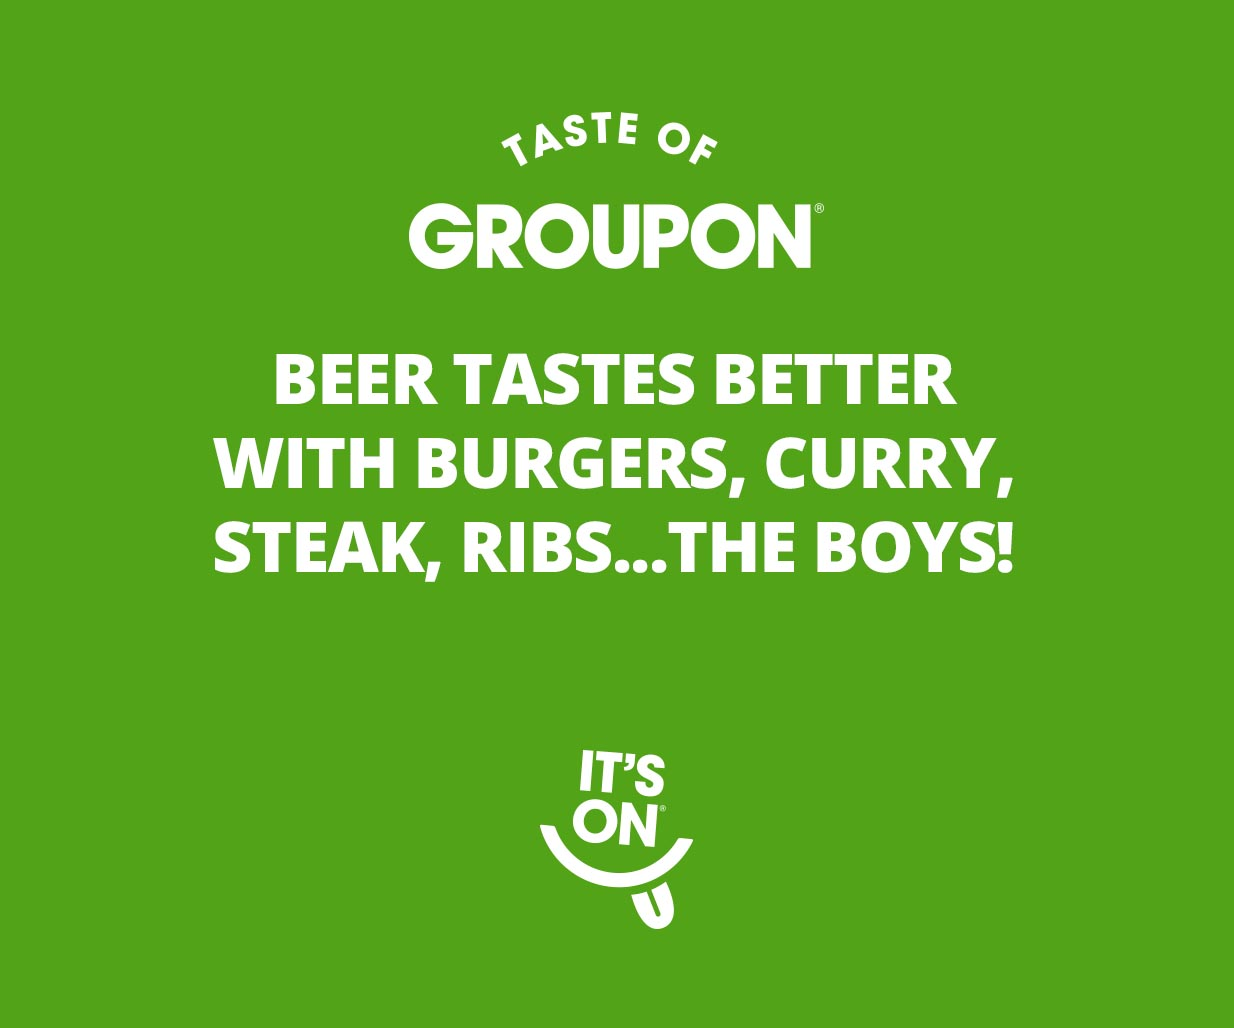 Digital Campaign, Creative Copywriting, Web Banners & Ad Design project in Sydney Australia for global online business brand Groupon, image F